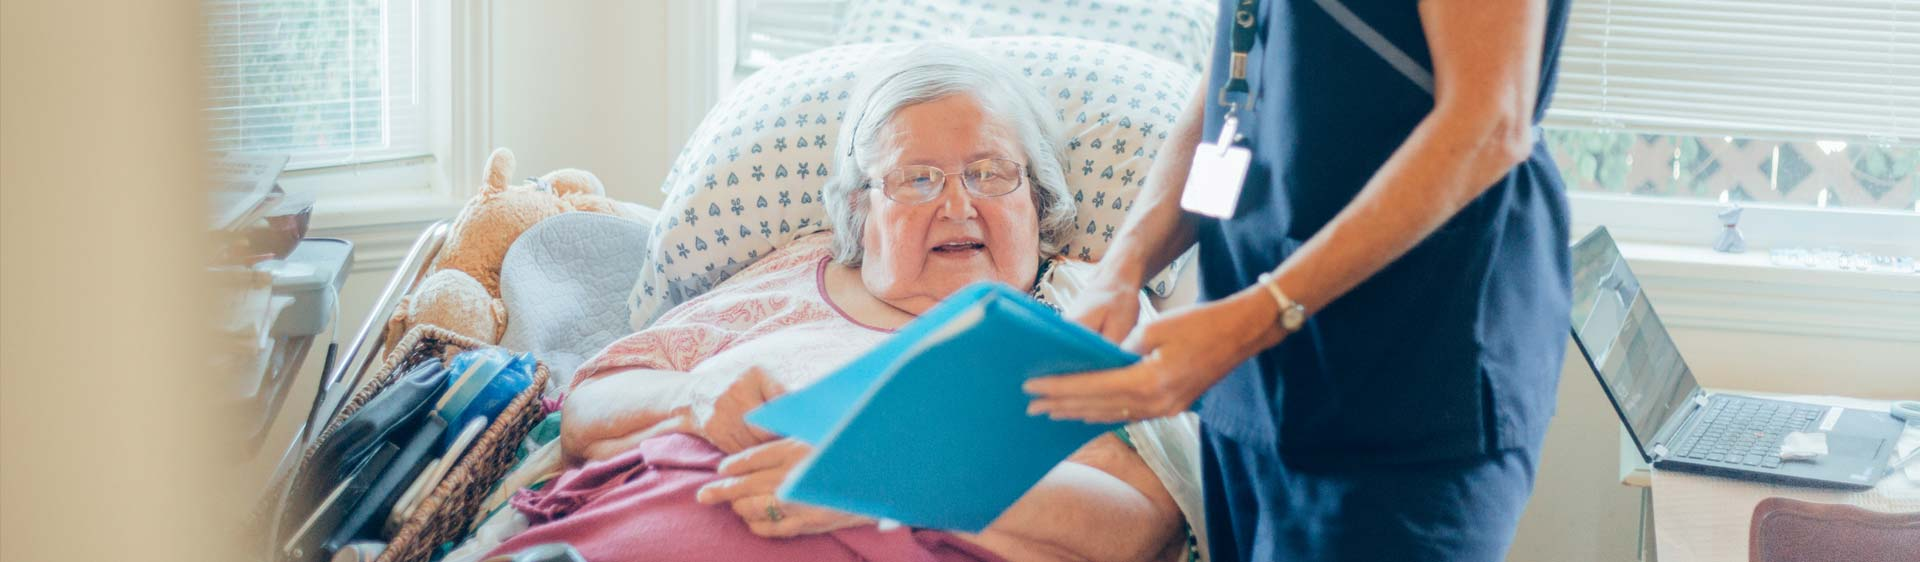 Home Health Speech Therapy